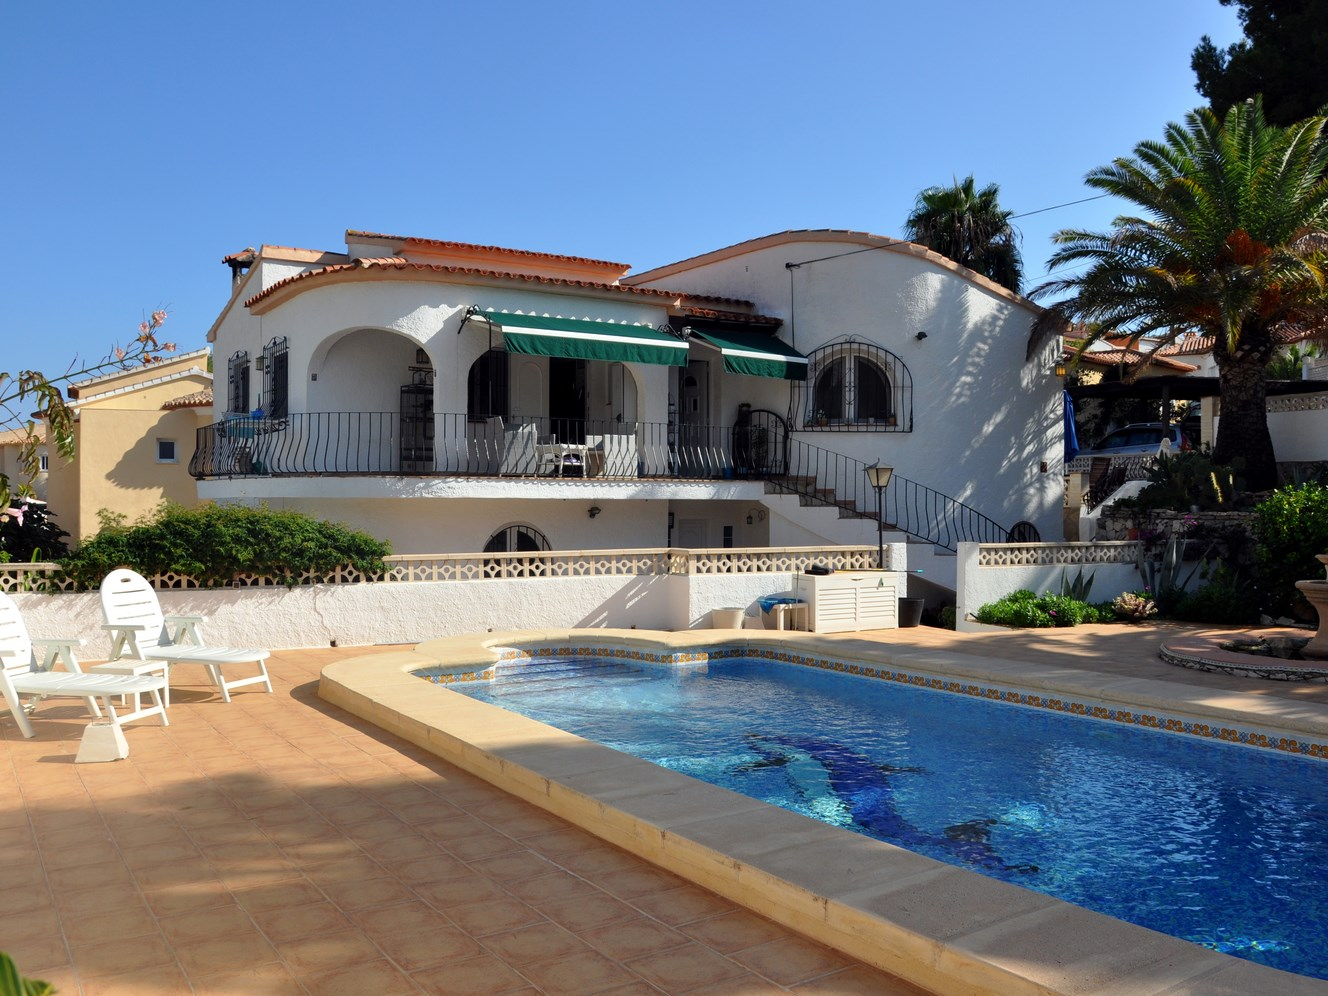 FOUR DOUBLE BEDROOM VILLA CLOSE TO THE SEA AT CAP BLANC, MORAIRA